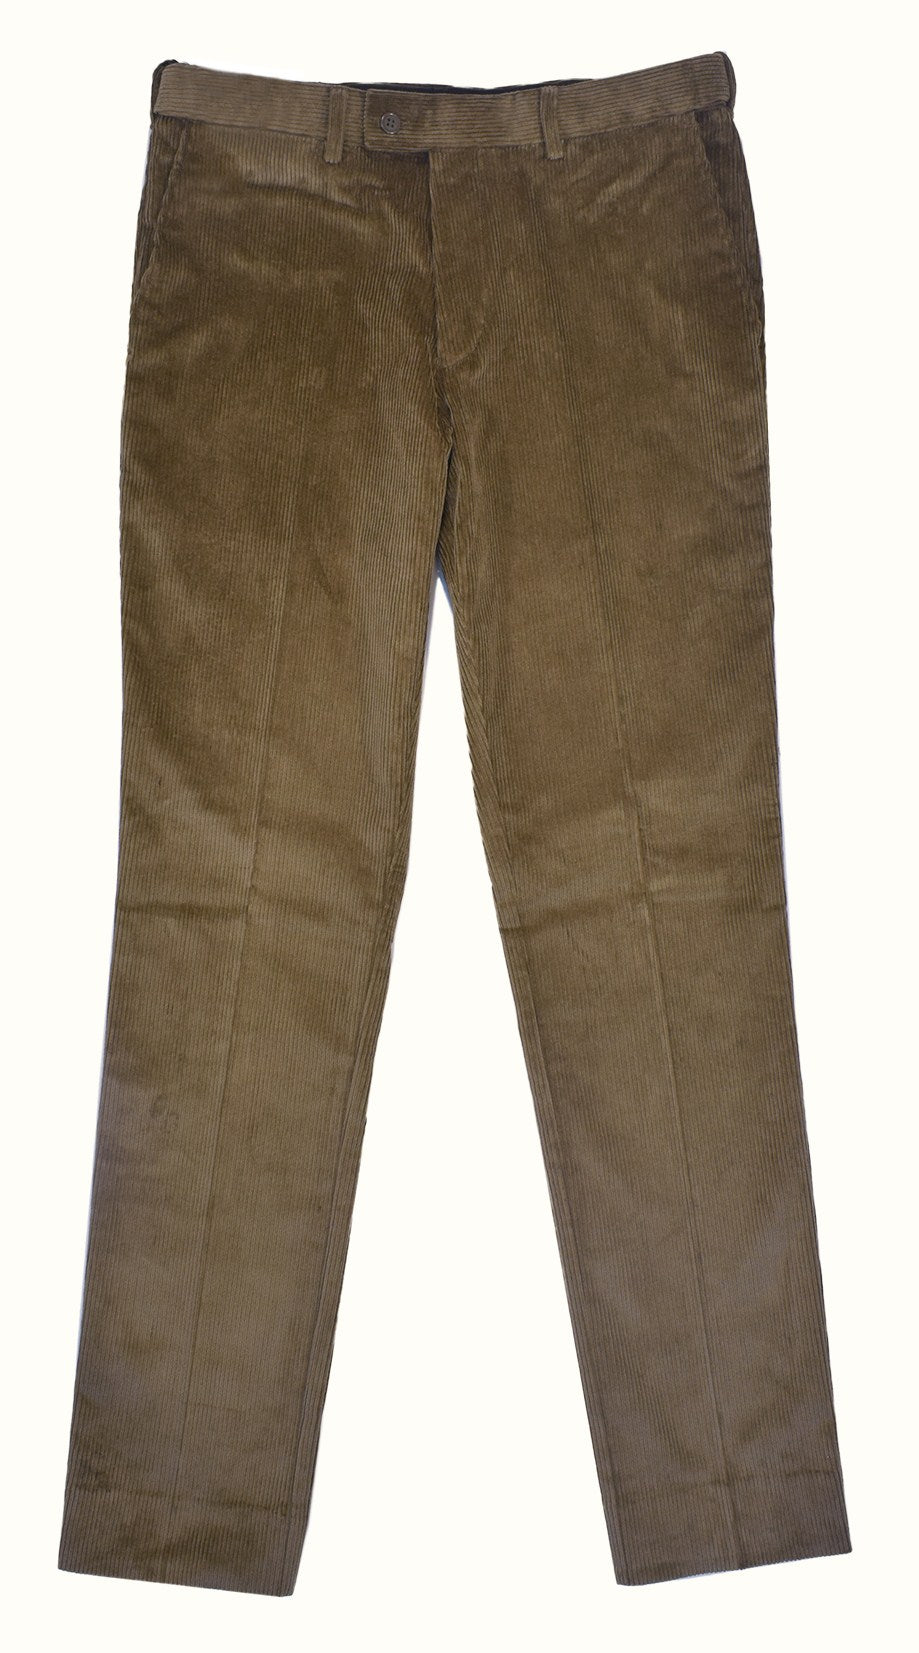 Country Look Texel Dress Cord Trouser